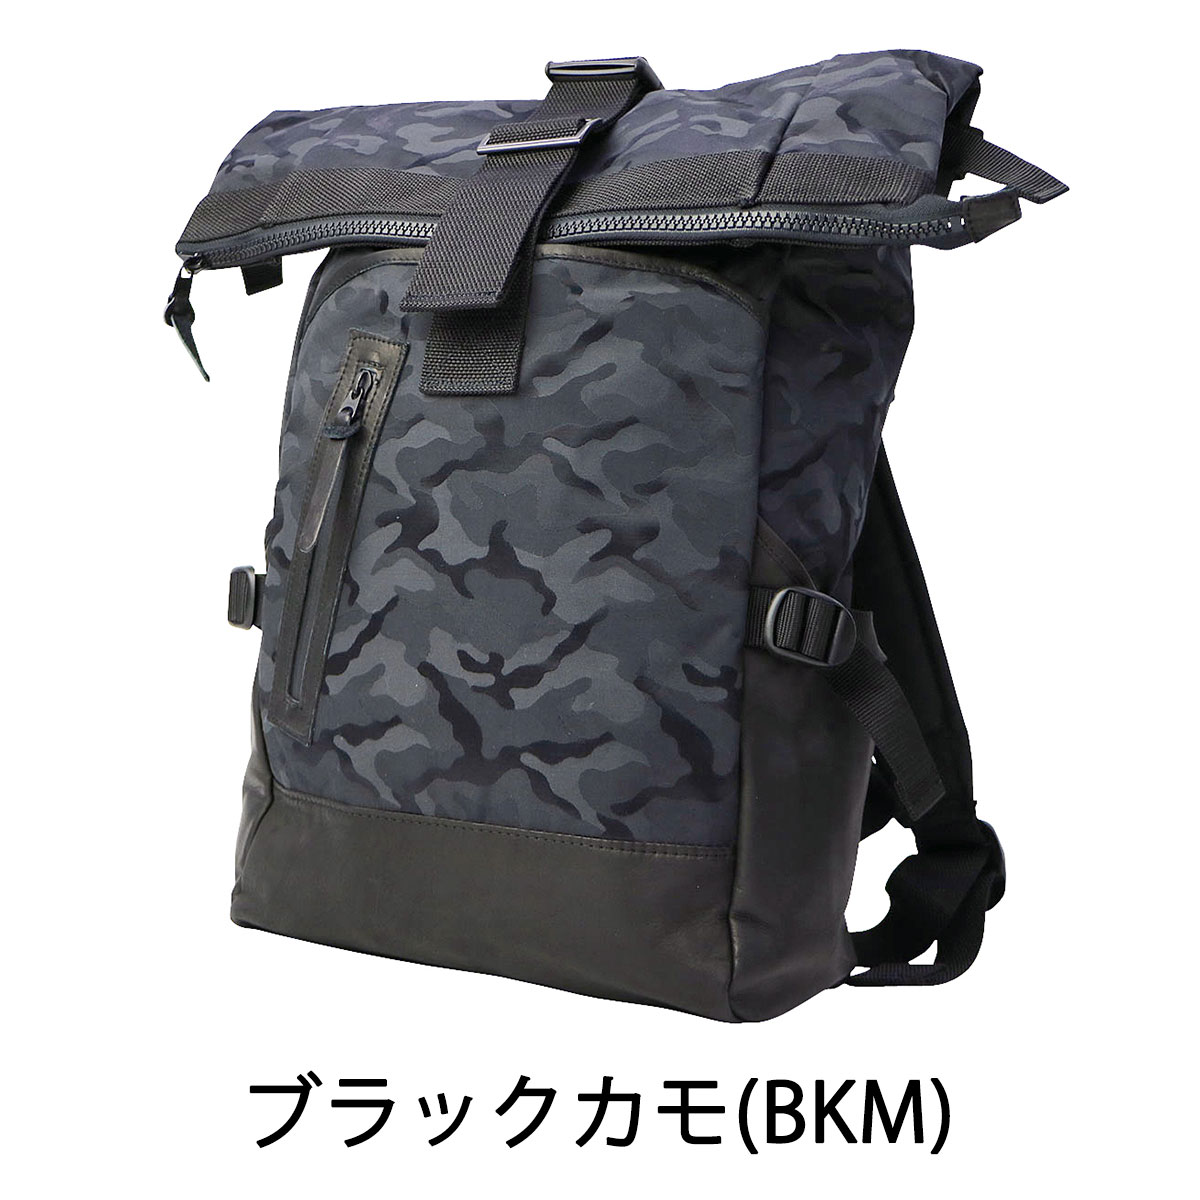 1bdb16d071 [SALE 30% OFF] DECADE rucksack backpack camouflage Roll top mens DCD-00602A